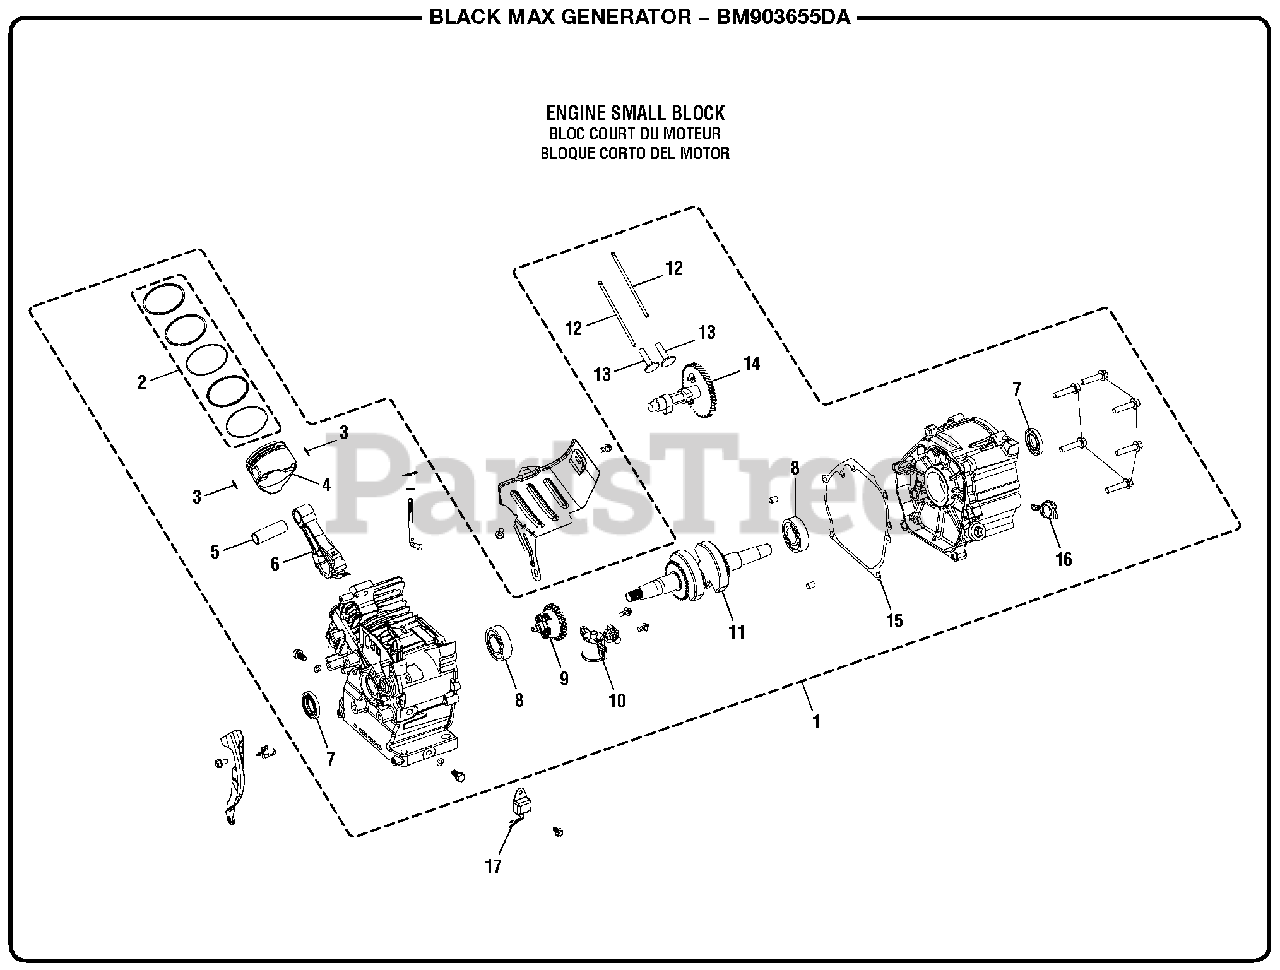 Black Max BM 903655 DA - Black Max 3,650 Watt Generator General Assembly ( Engine Small Block) Parts Lookup with Diagrams | PartsTreePartsTree